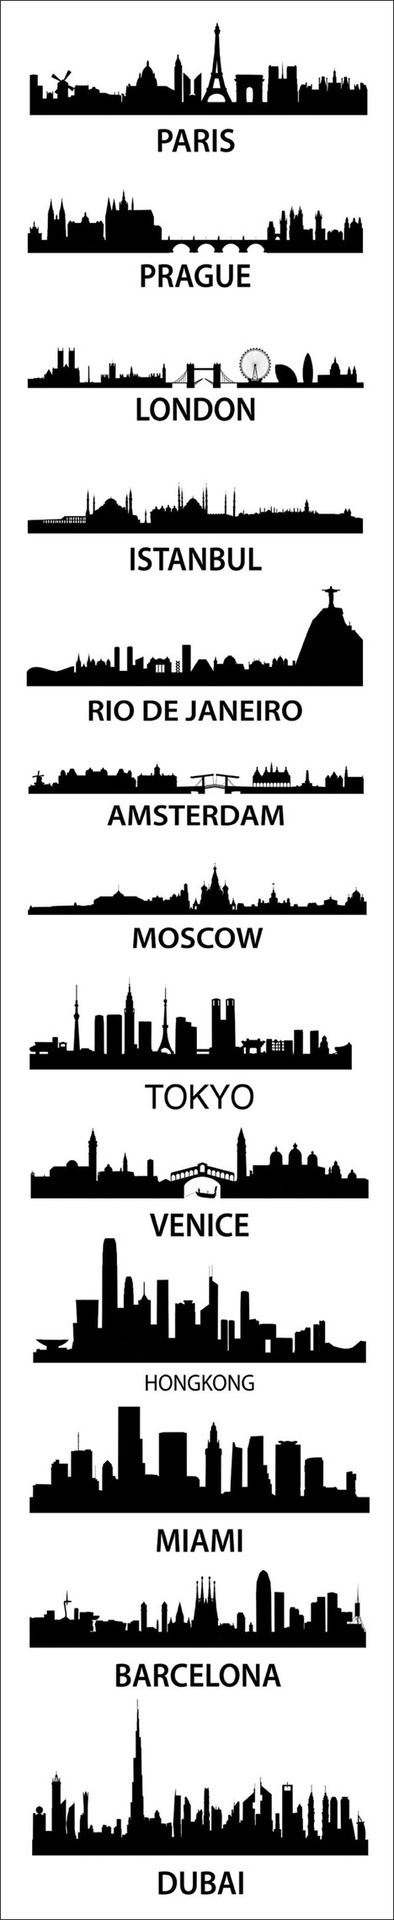 Iconic Skylines | AP Human Geography Education | Scoop.it